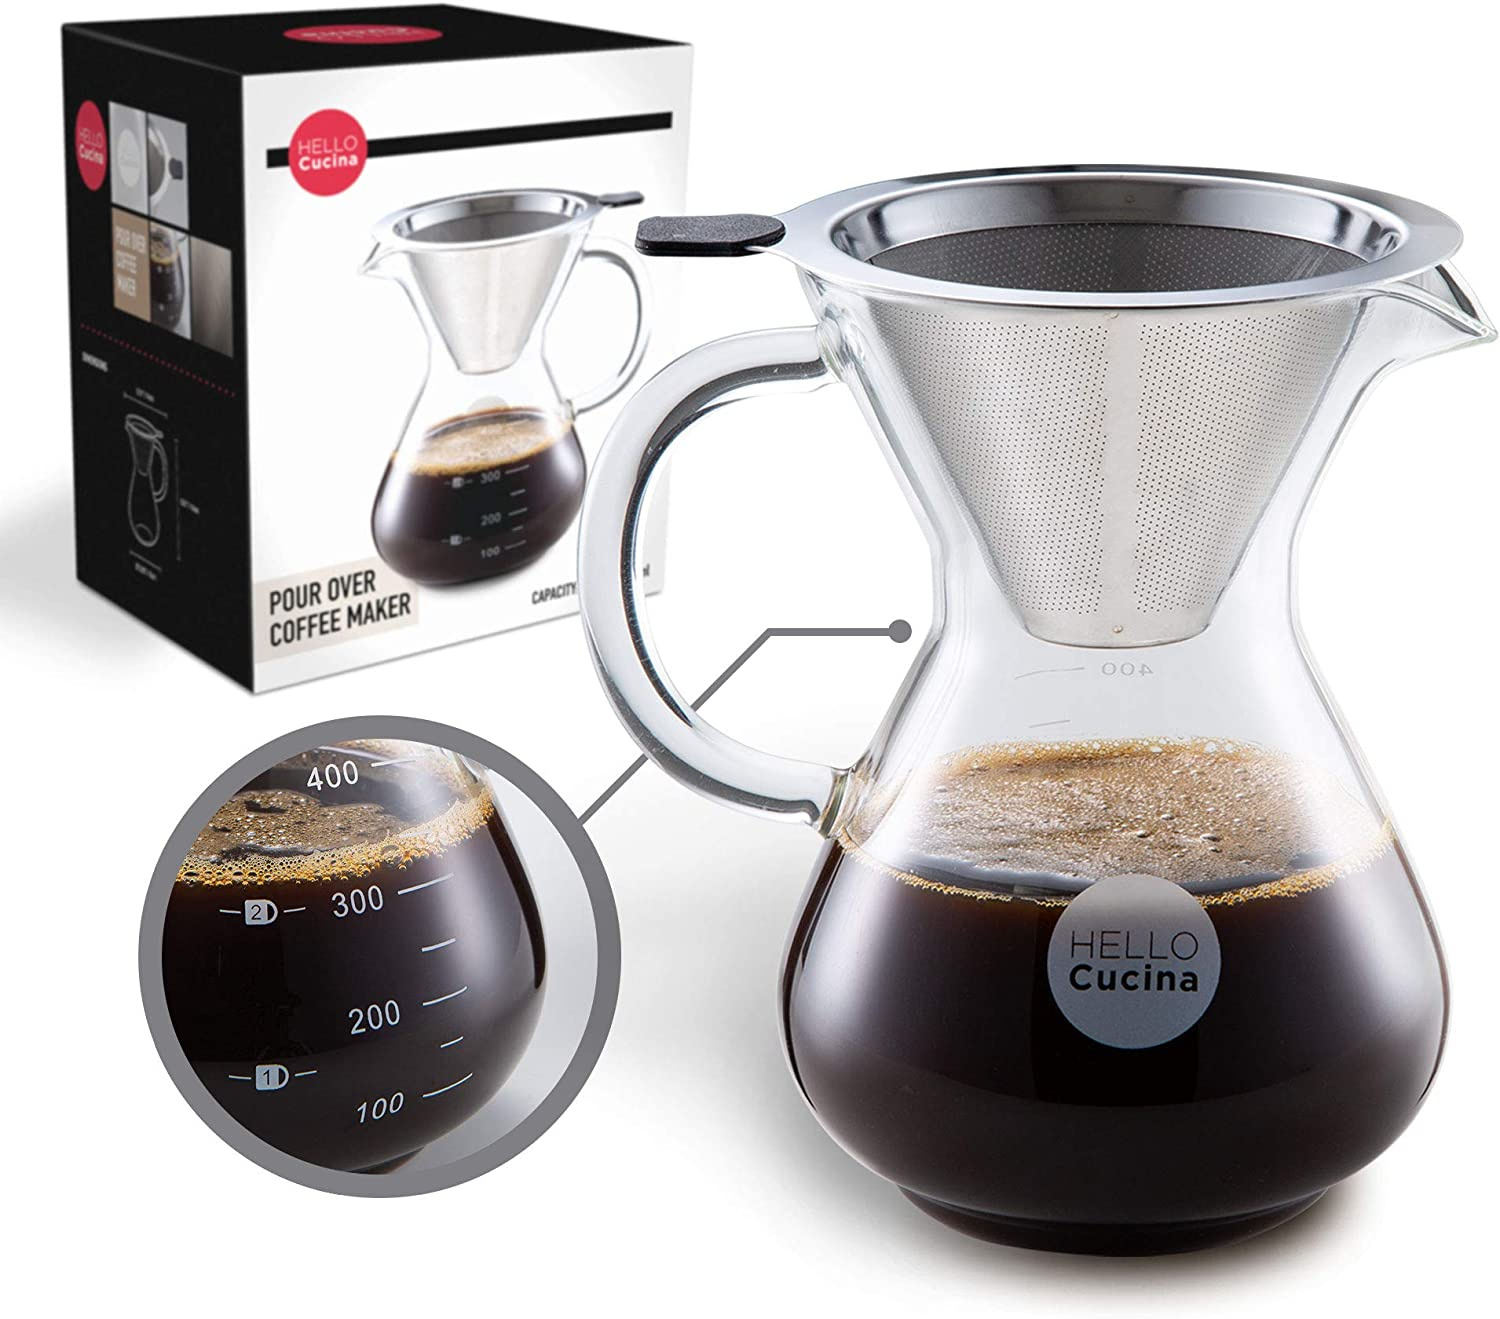 Hello Cucina Pour Over Coffee Maker, 13.5 Oz Coffee Dripper, Top Quality Borosilicate Glass Carafe with Stainless Steel Permanent Filter - A Kitchen Essential (1-Pack)